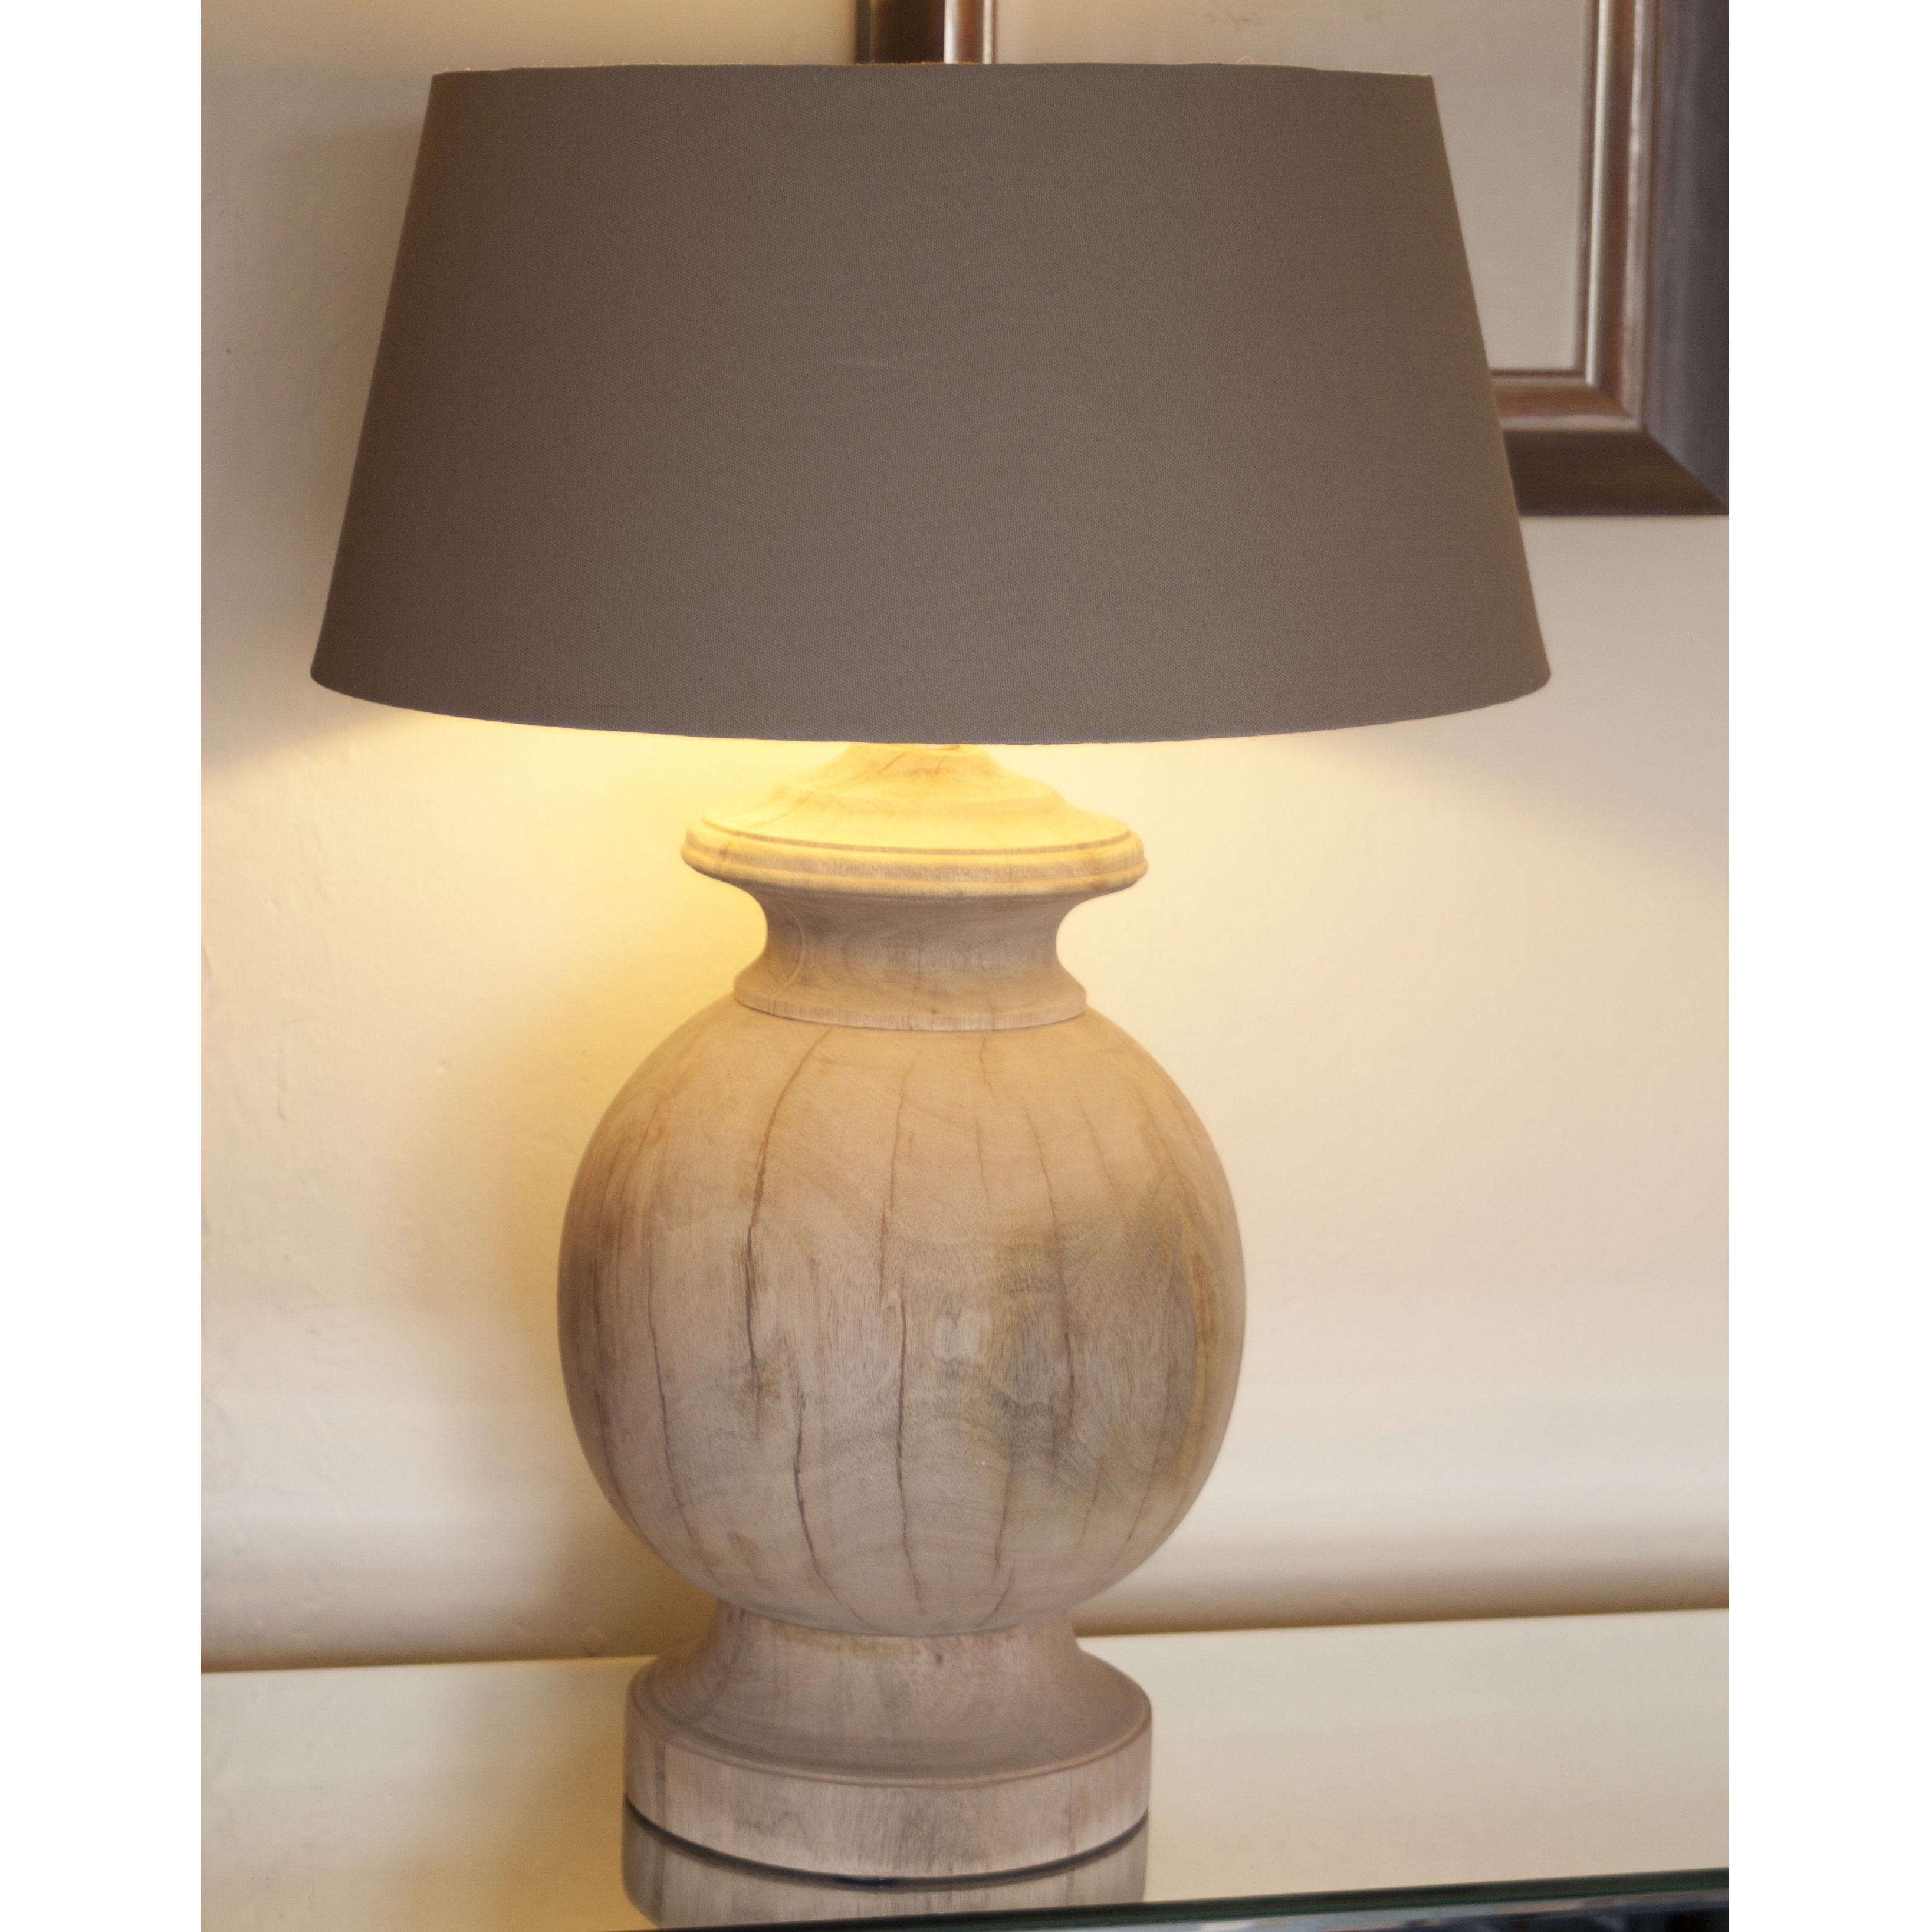 Newest Lamp : Wood Table Lamps For Bedroom Wooden Living Roomdavid Pertaining To Country Style Living Room Table Lamps (View 16 of 20)